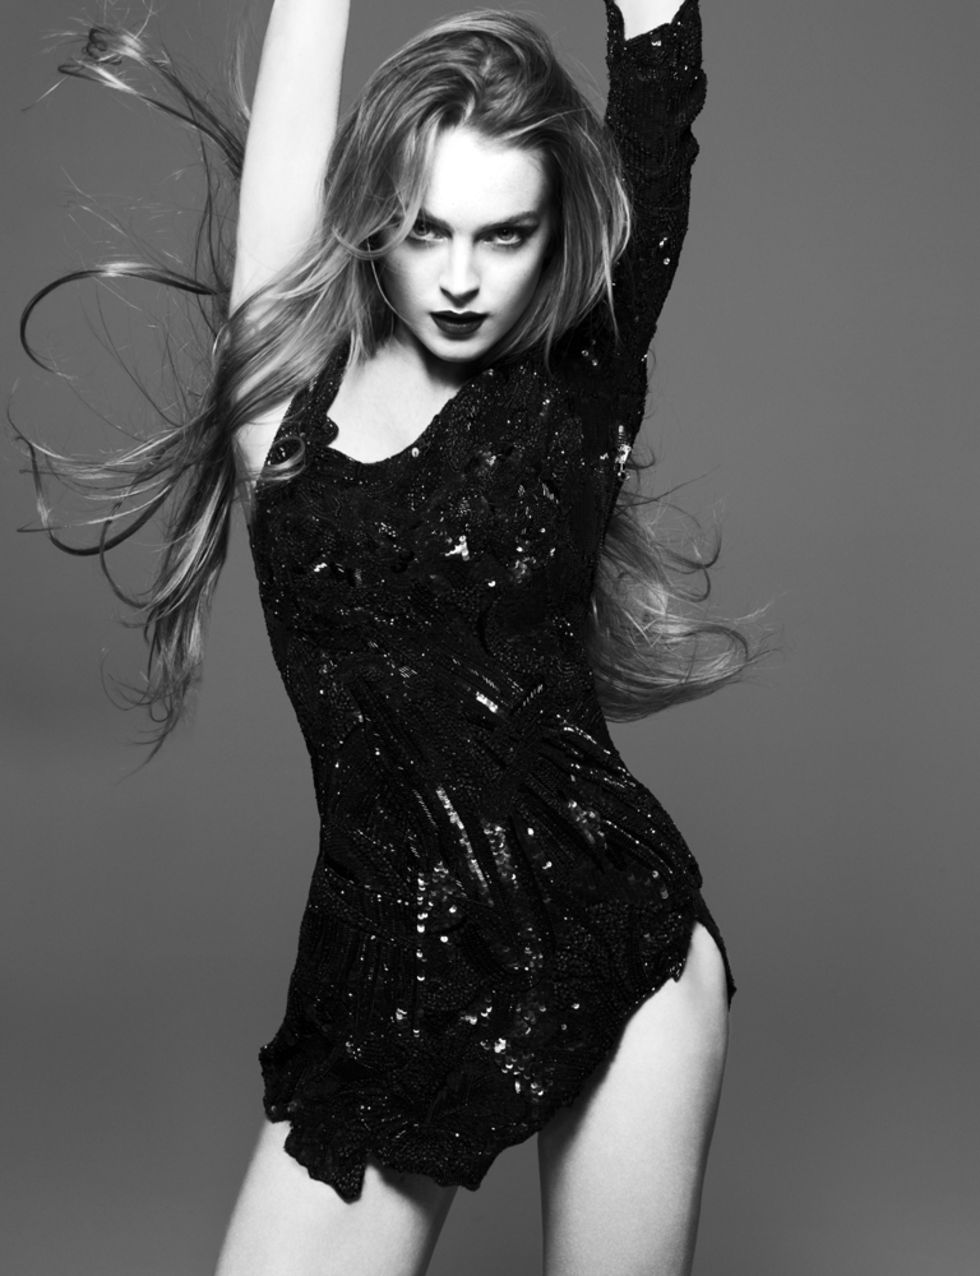 lindsay-lohan-interview-magazine-photoshoot-mq-01